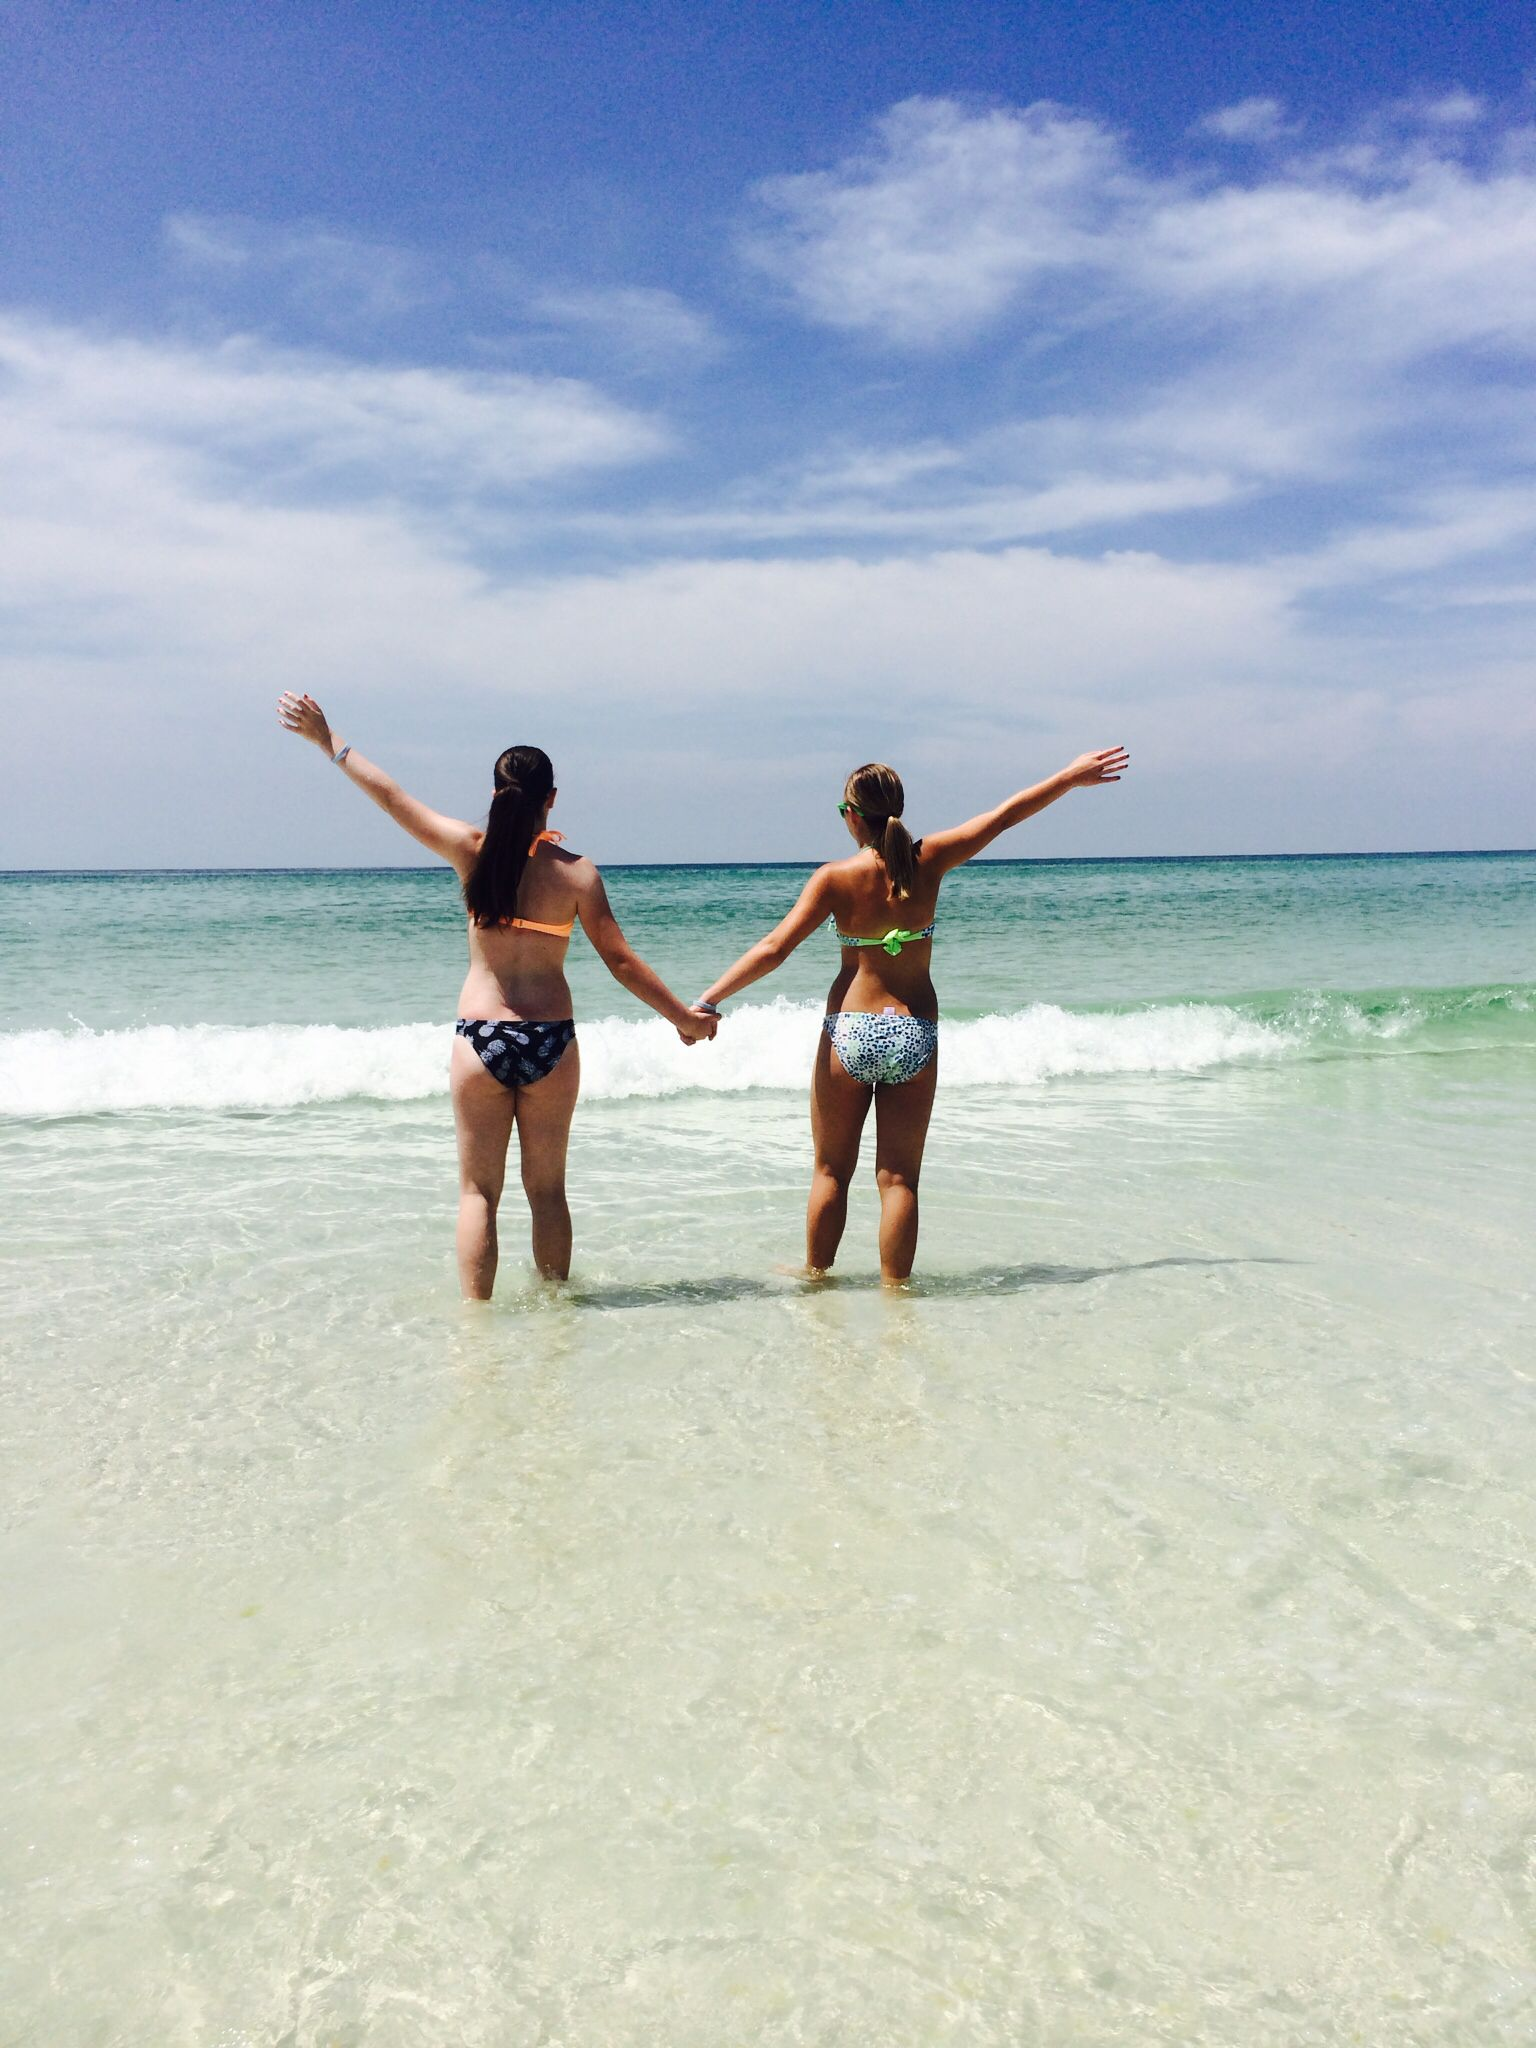 When Your At The Beach With Your Best Friend This Is A Great